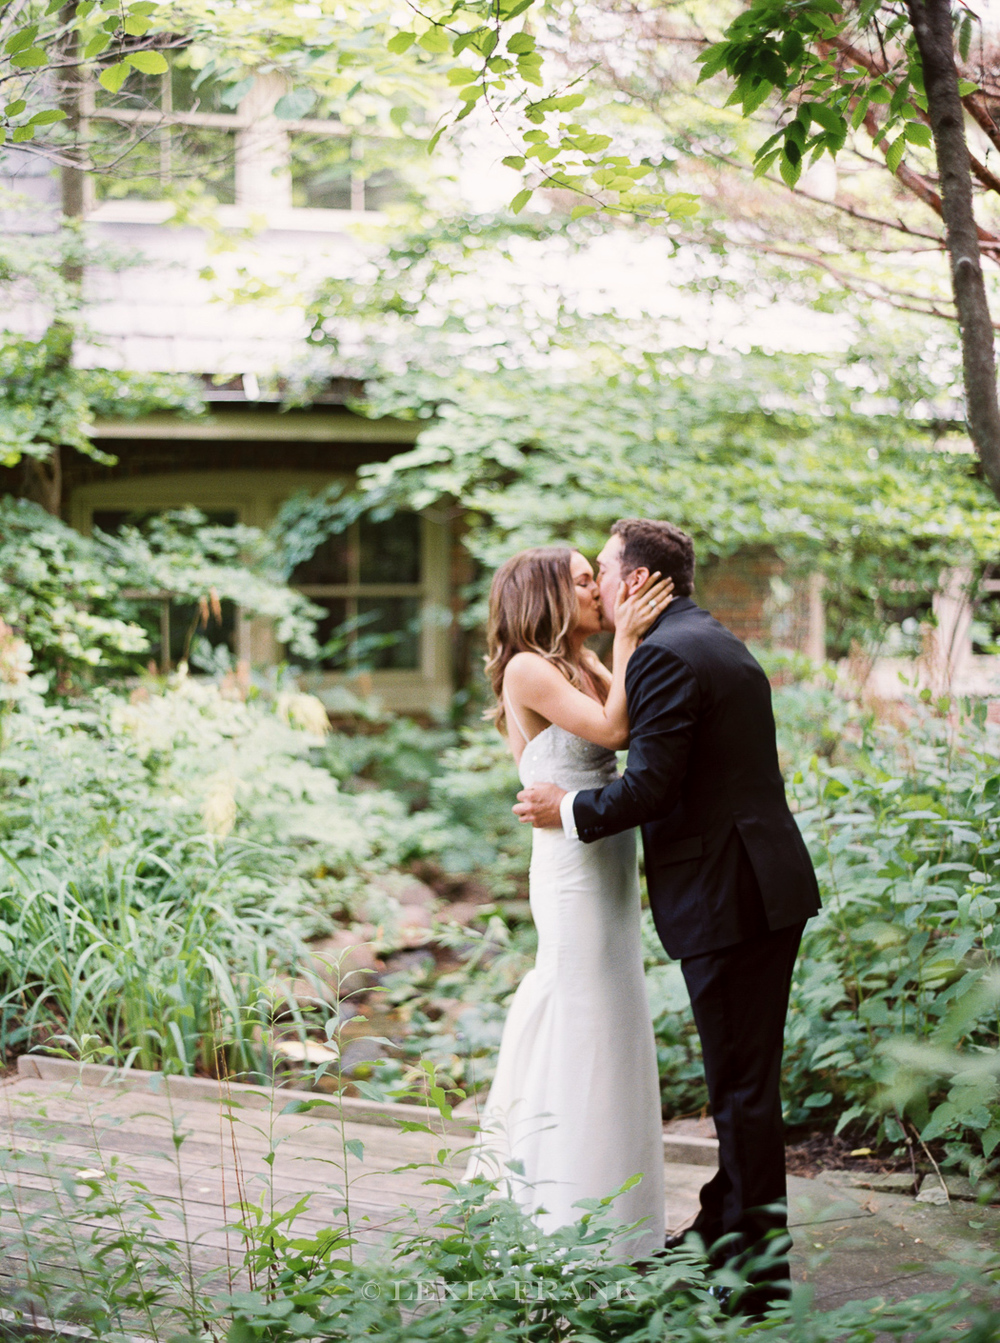 destination wedding photographer Lexia Frank- a portland oregon fine art film photographer- photographs this luxury wedding at whistling straits golf course wedding on film.   first look